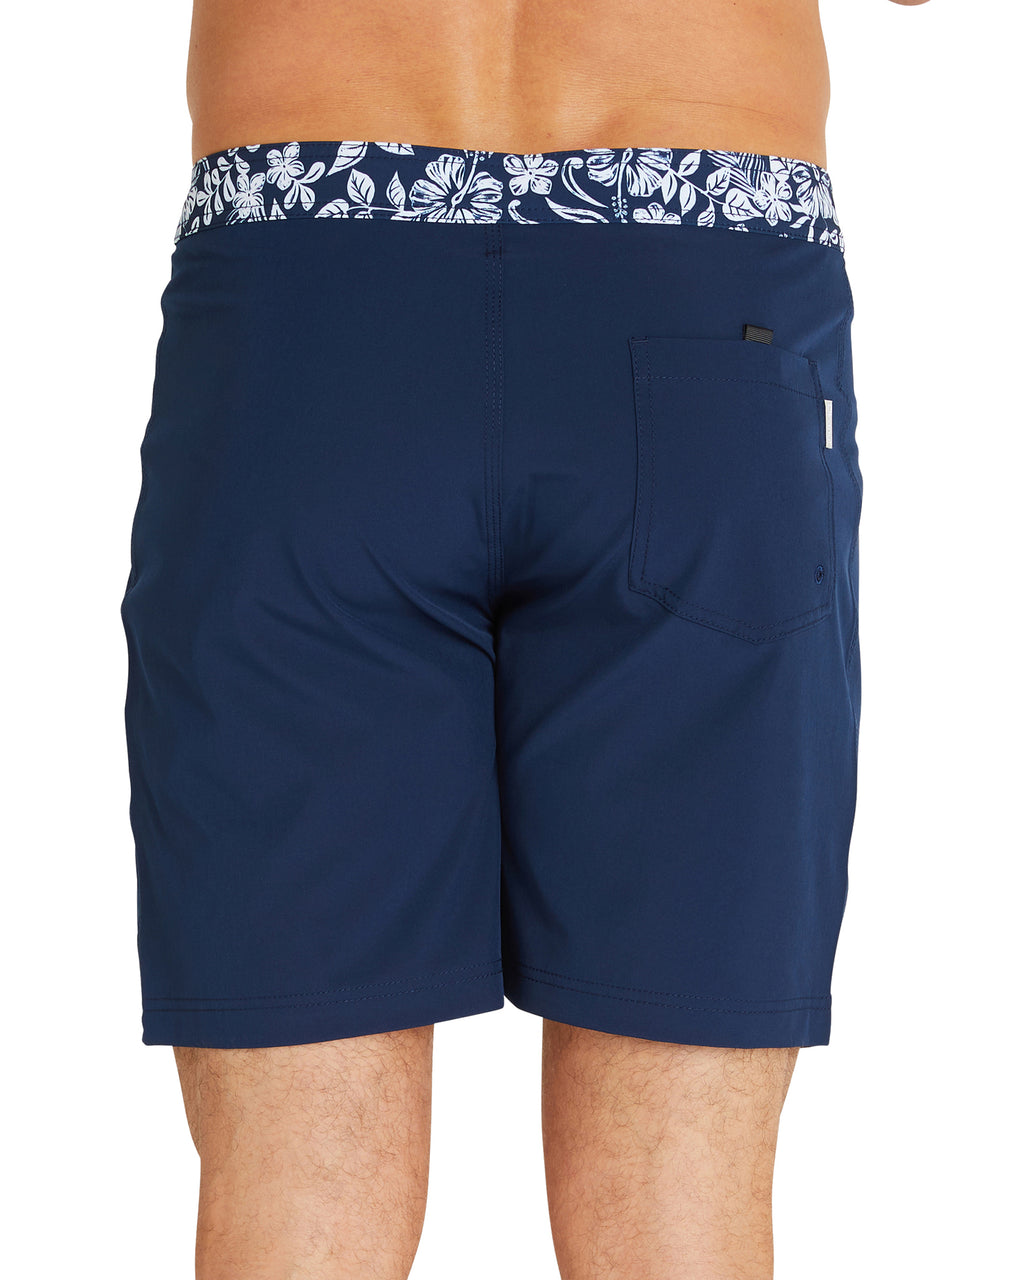 Board Shorts - Sands - Navy - Boardrider